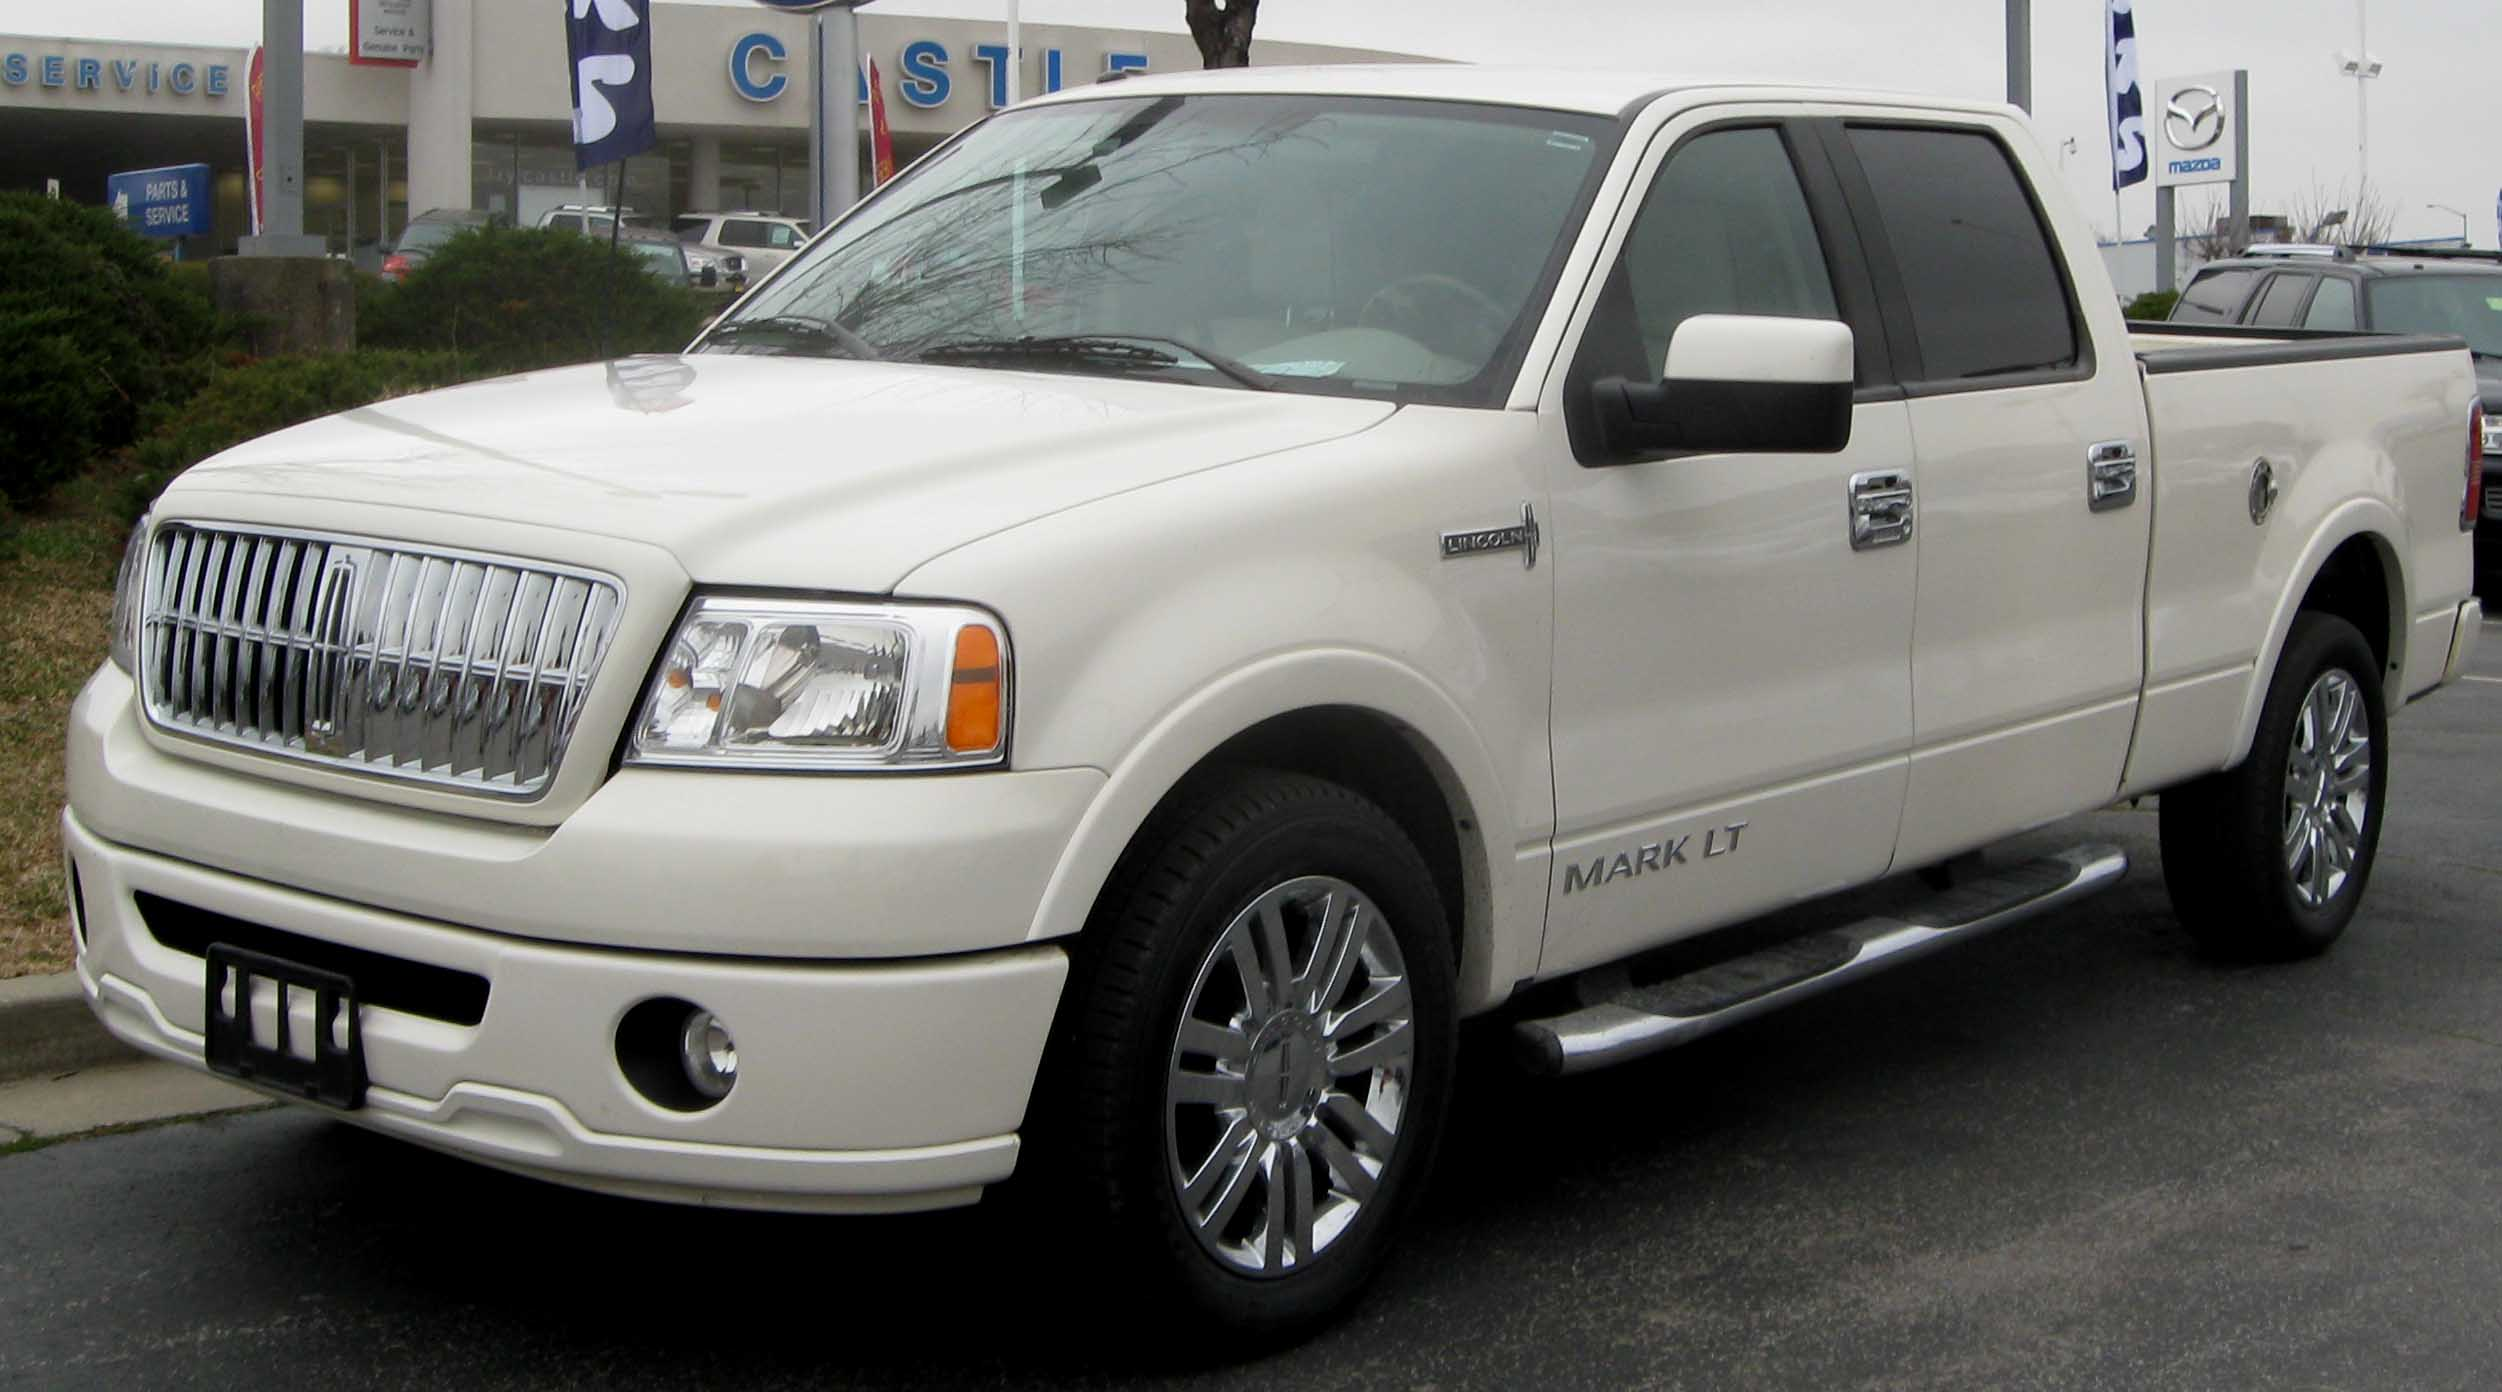 Lincoln Mark Lt Wikipedia